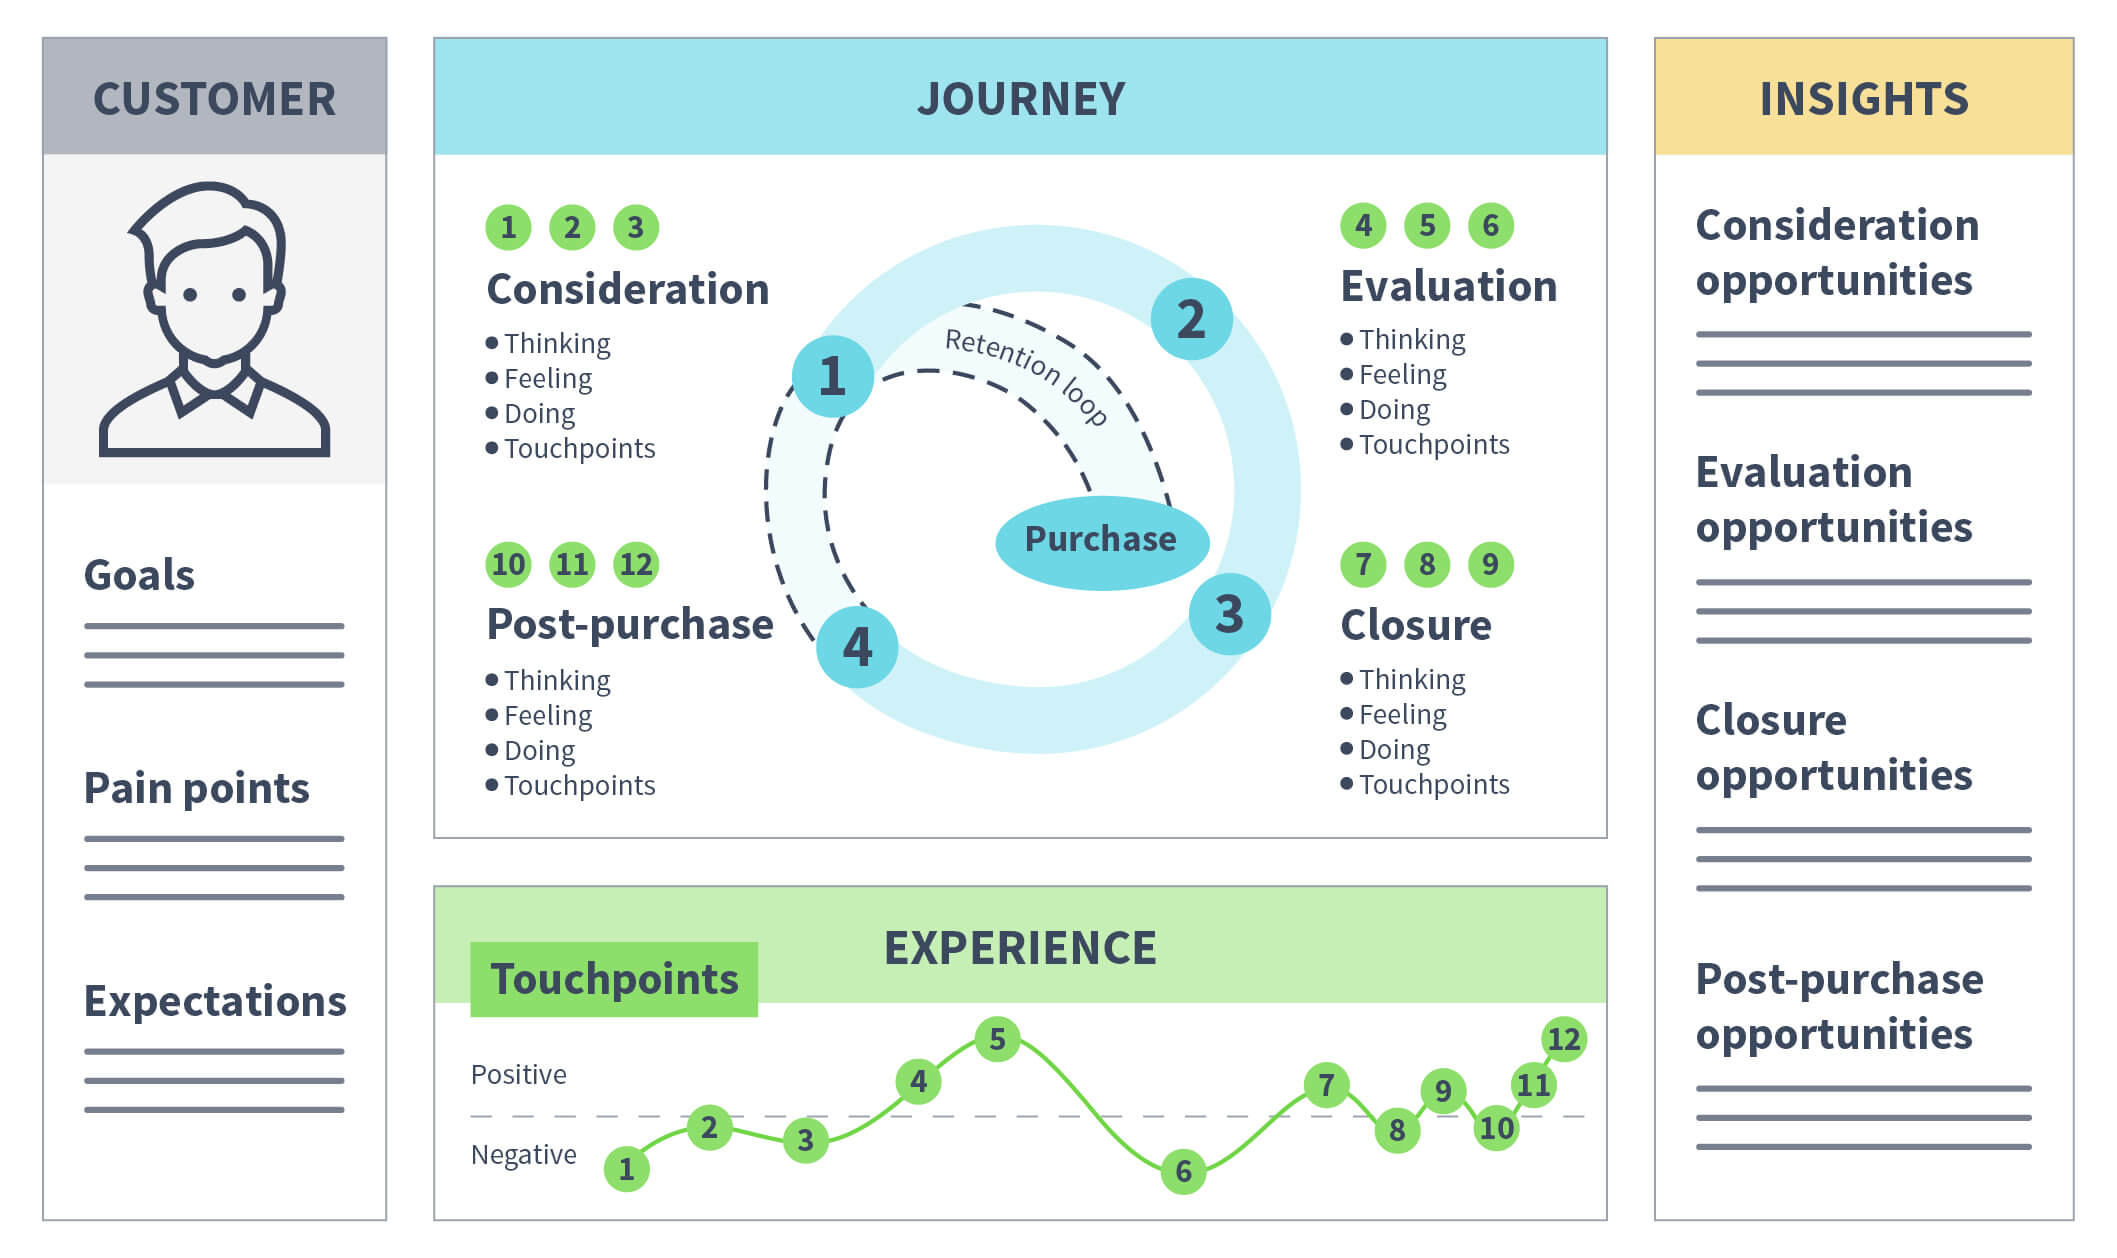 An example of a customer journey map. This includes a column with a picture of the customer, their goals, pain points, and expectations. The middle column shows a circular representation of the customer journey, with touchpoints at the bottom. The last column shows insights including consideration opportunities, evaluation opportunities, closure opportunities, and post-purchase opportunities.